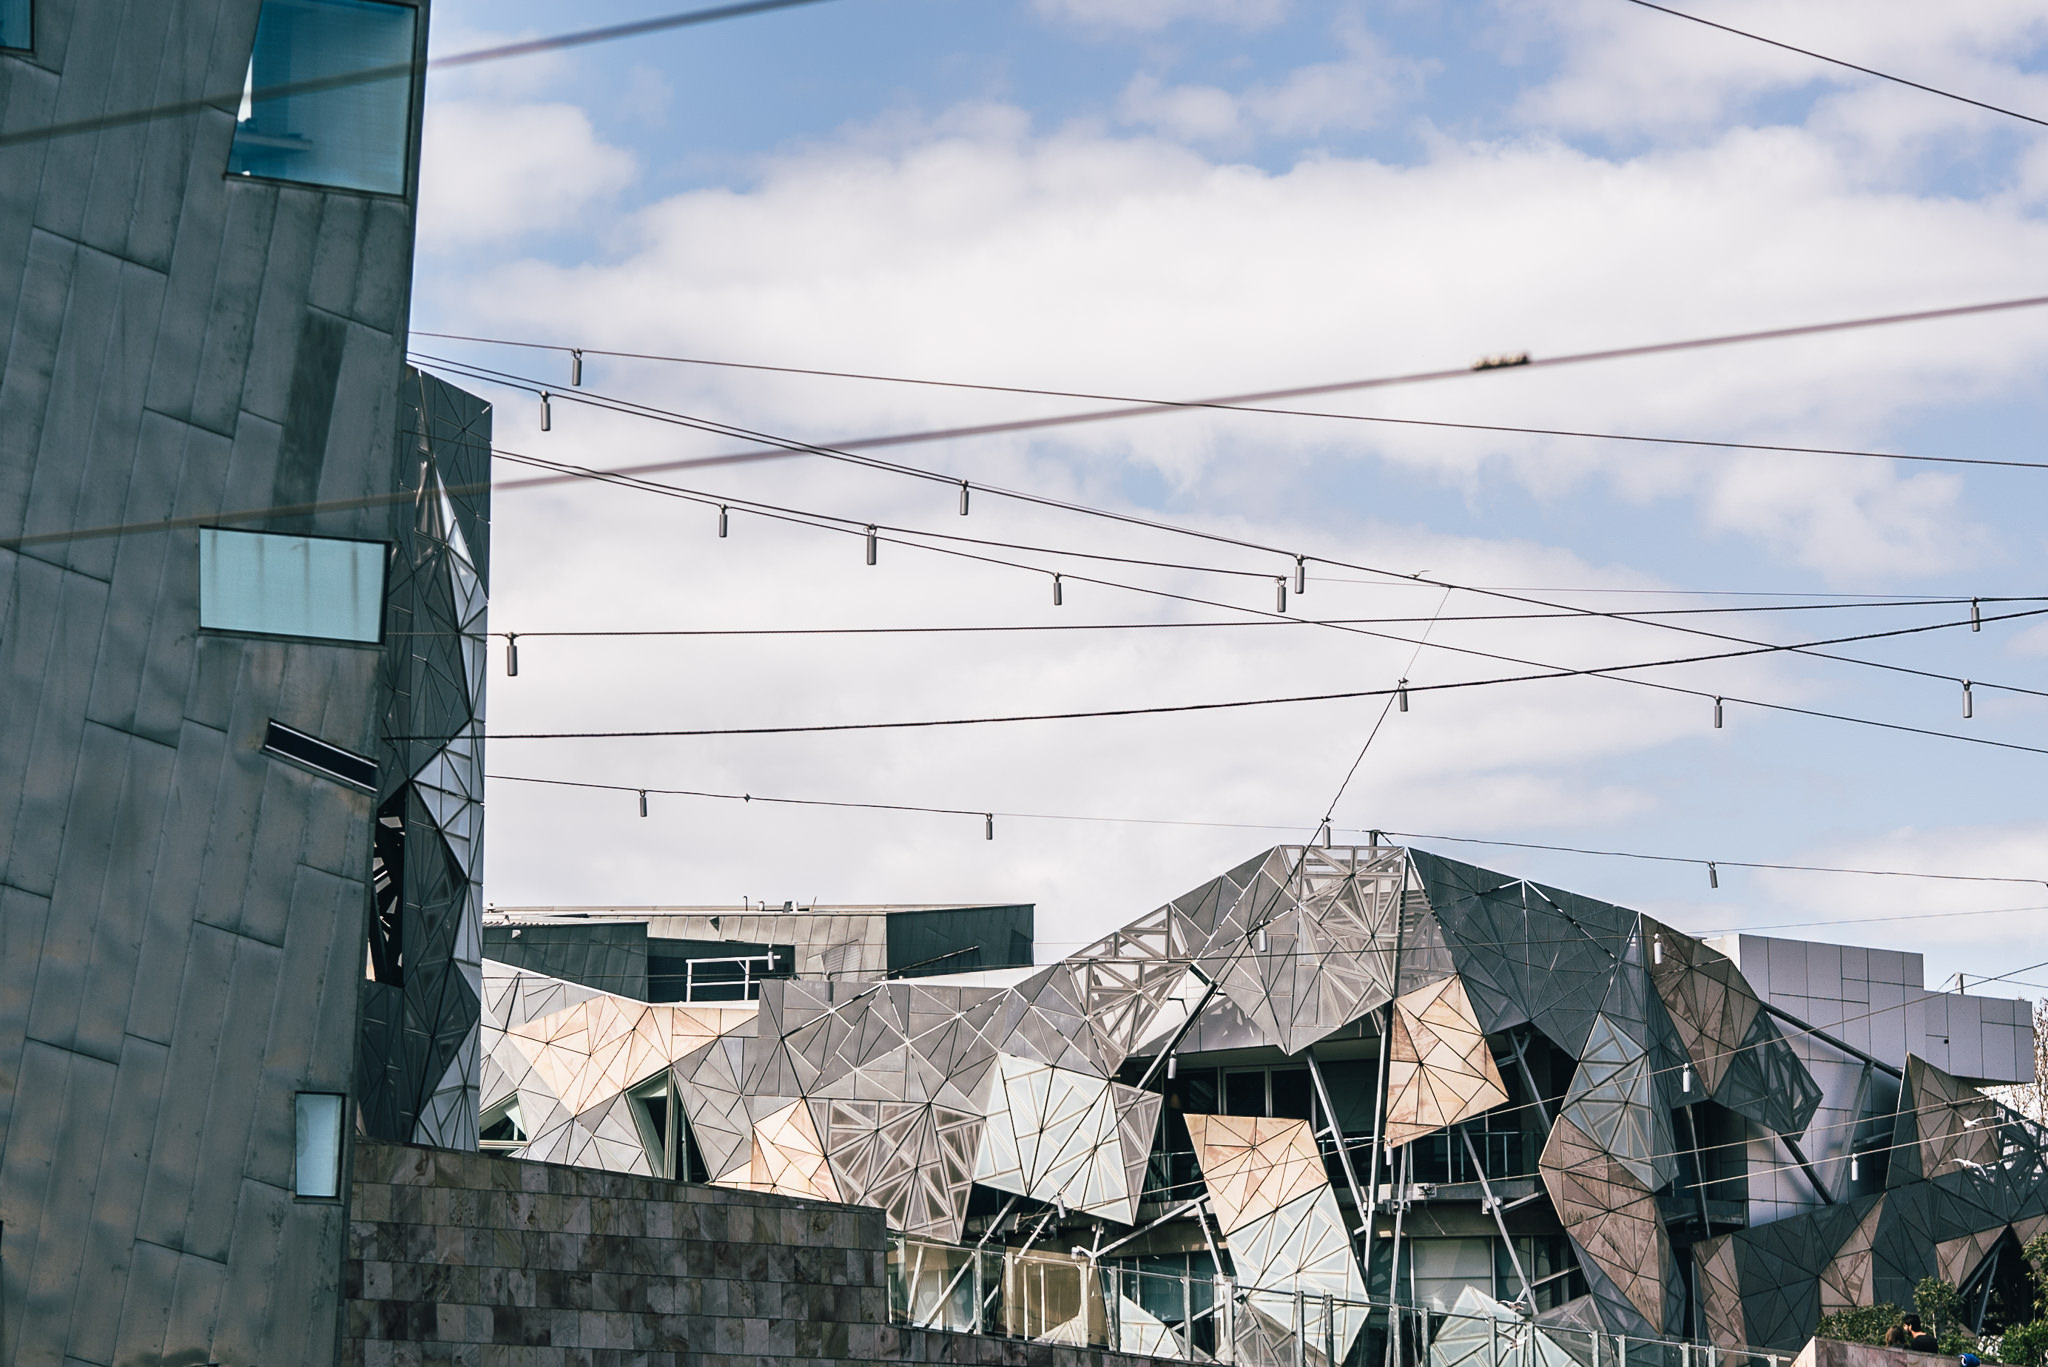 creative federation square photograph - different perspective